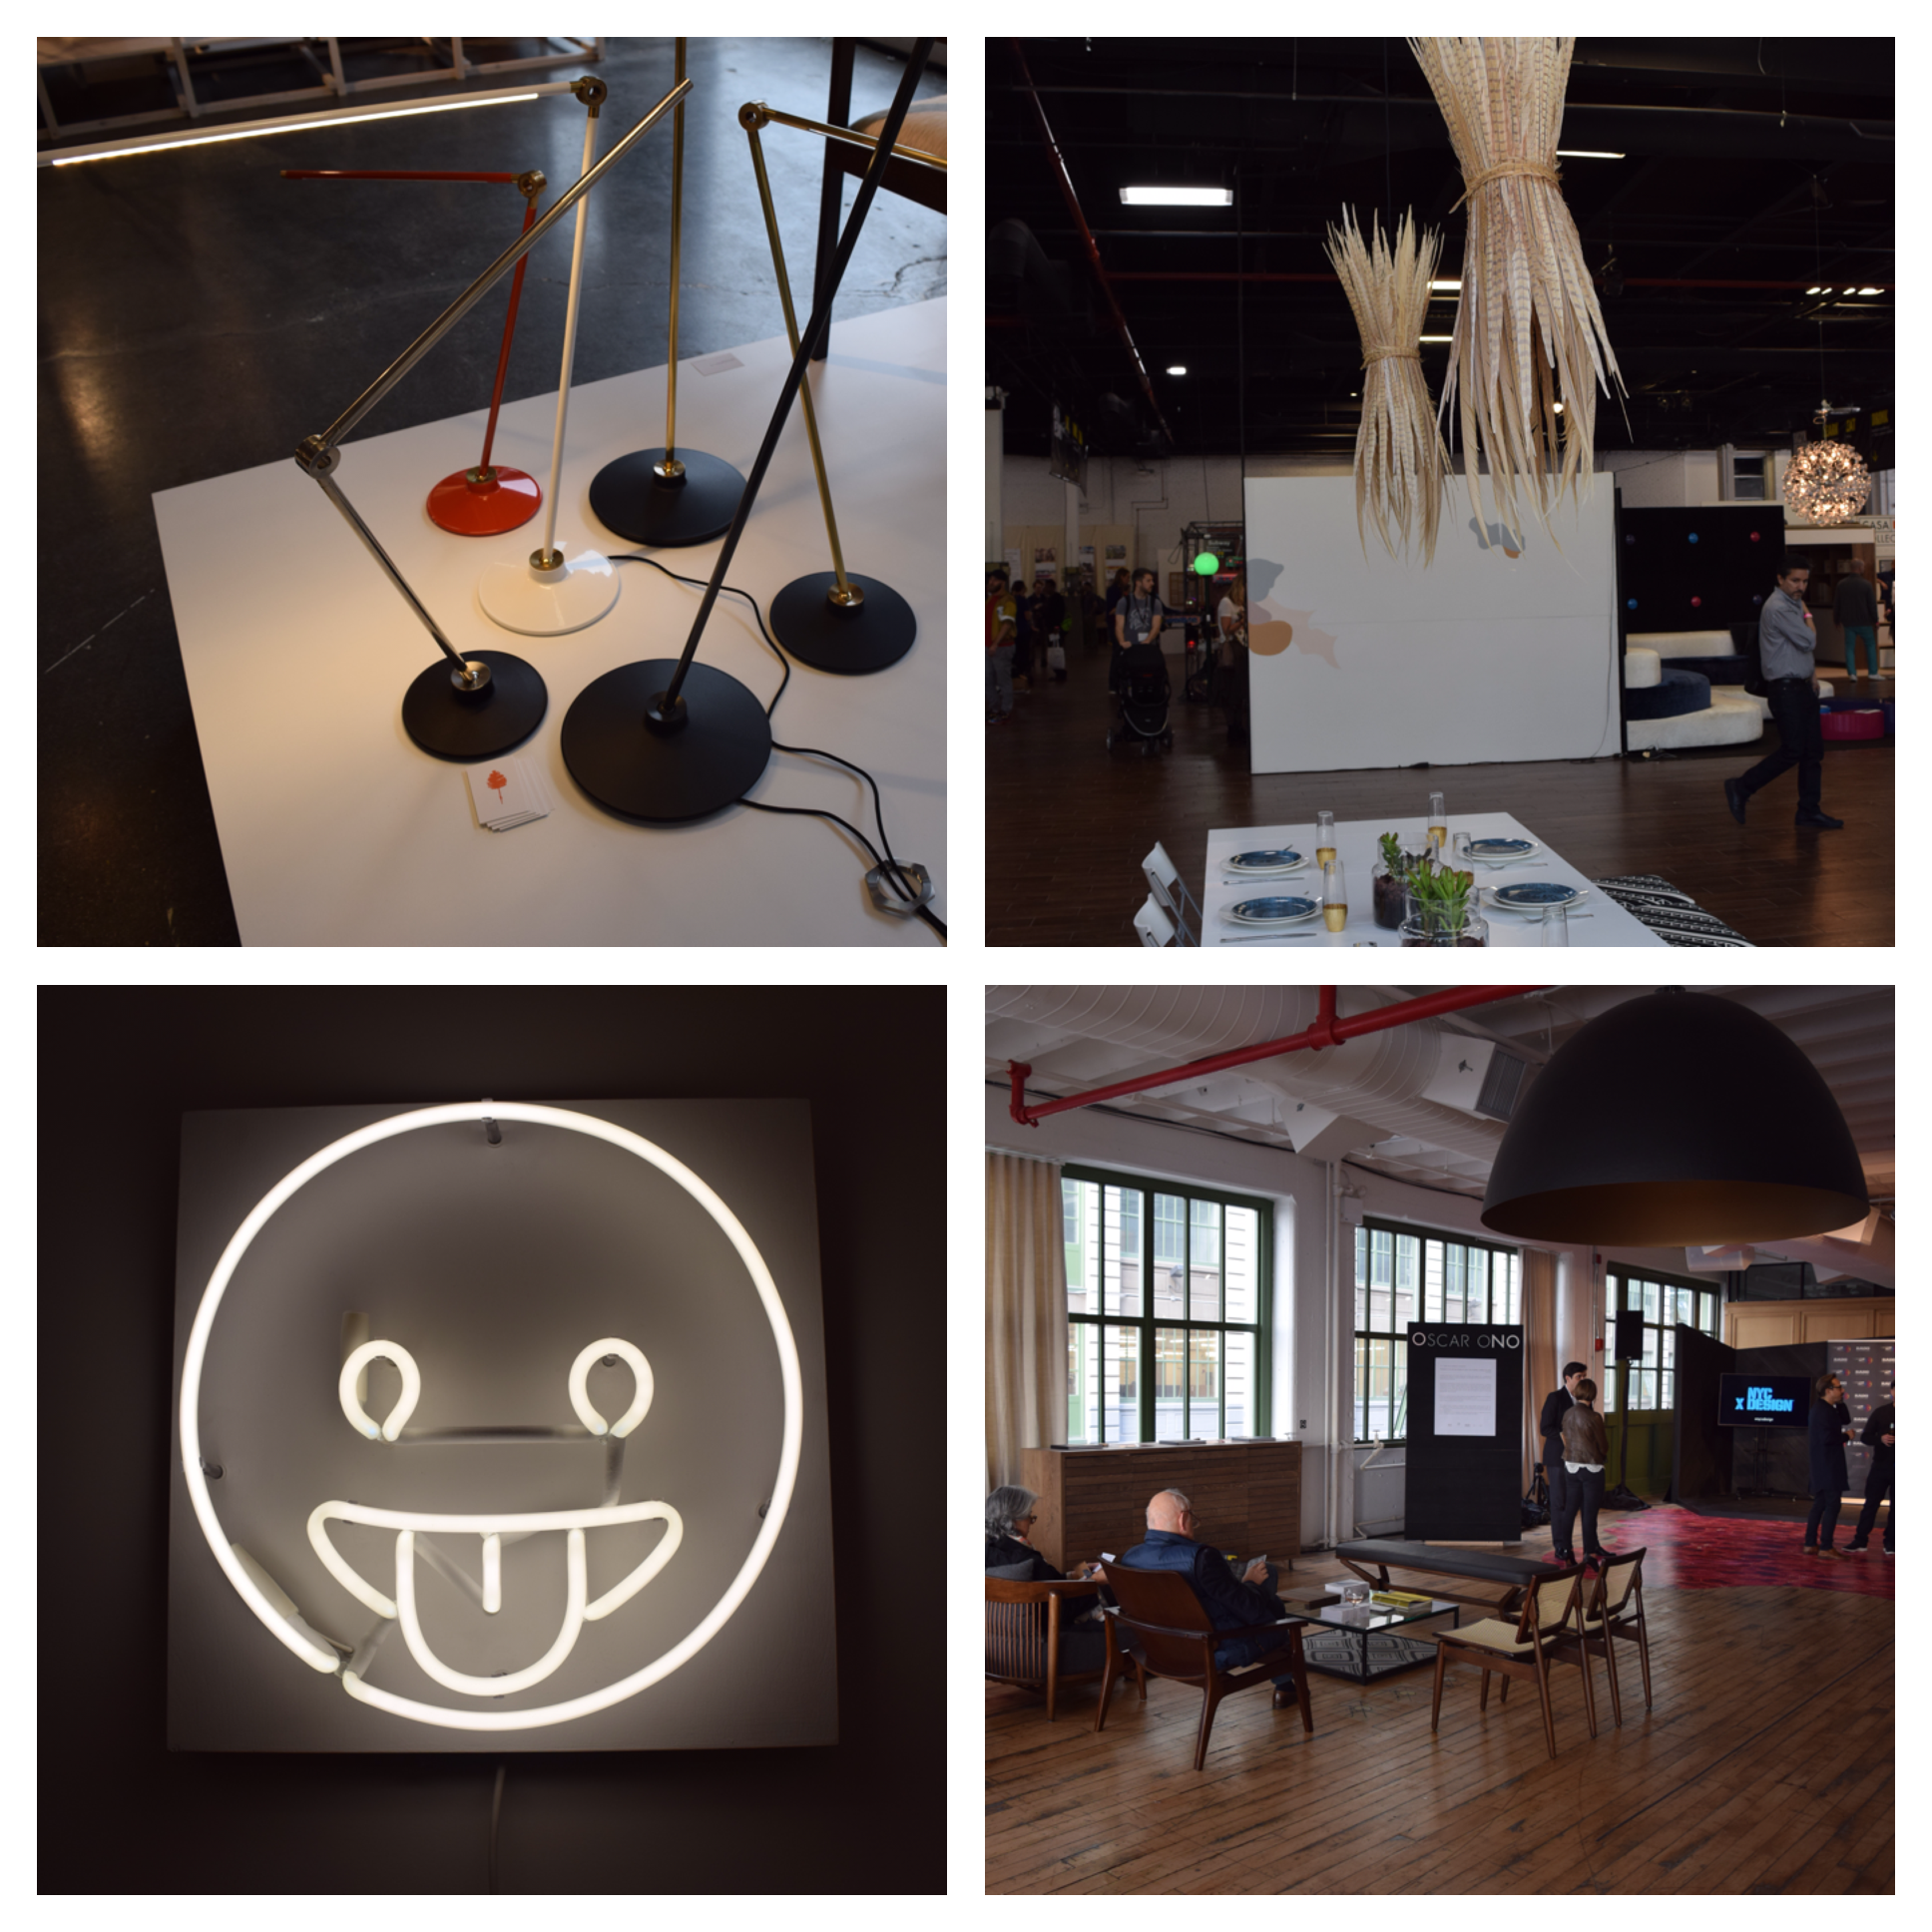 Top Left:  Modern and versatile desk lamp by  Juniper    Top Right:  Feather pendant lights by  LAAF     Bottom Left: Who doesn't love emojis? Sconce by  Alice Taranto    Bottom Right:  Large pendant light. Not sure who this is by but it's perfect for defining an area in a large loft space.